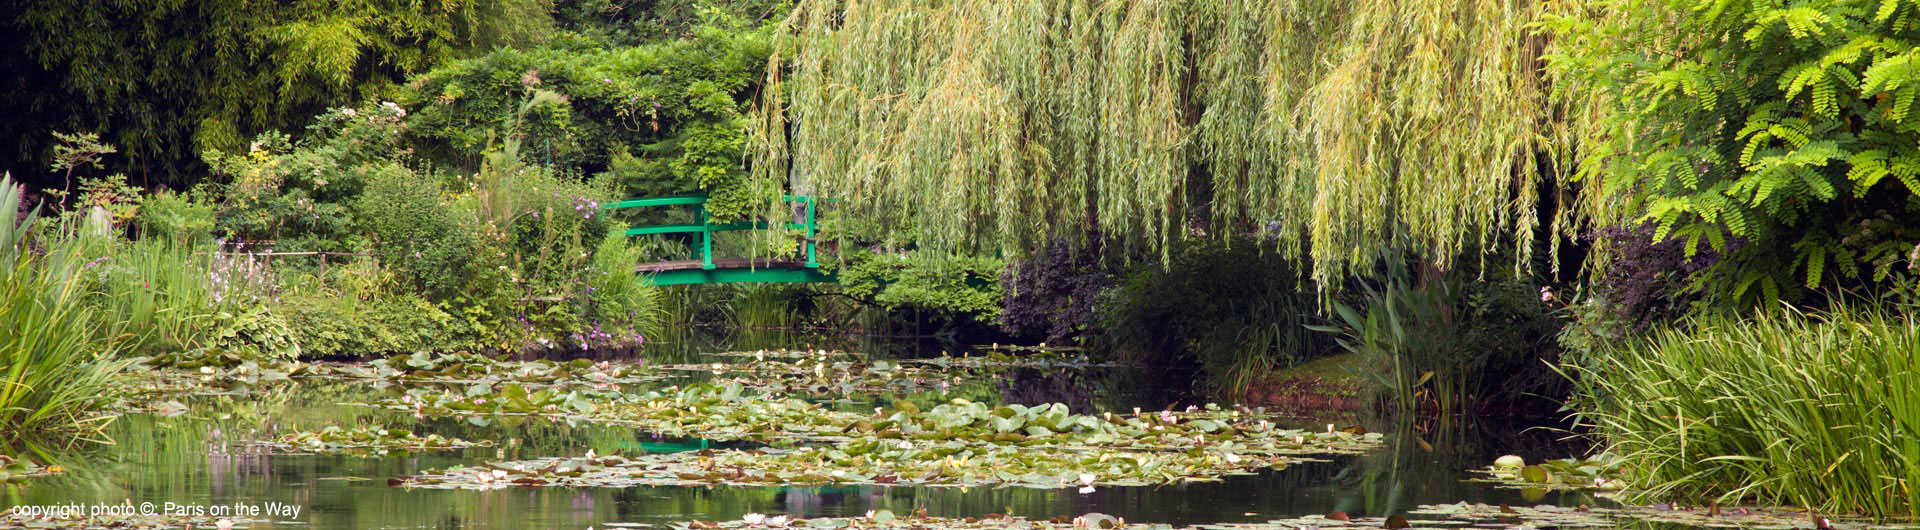 Visite guidée de Giverny & Claude Monet